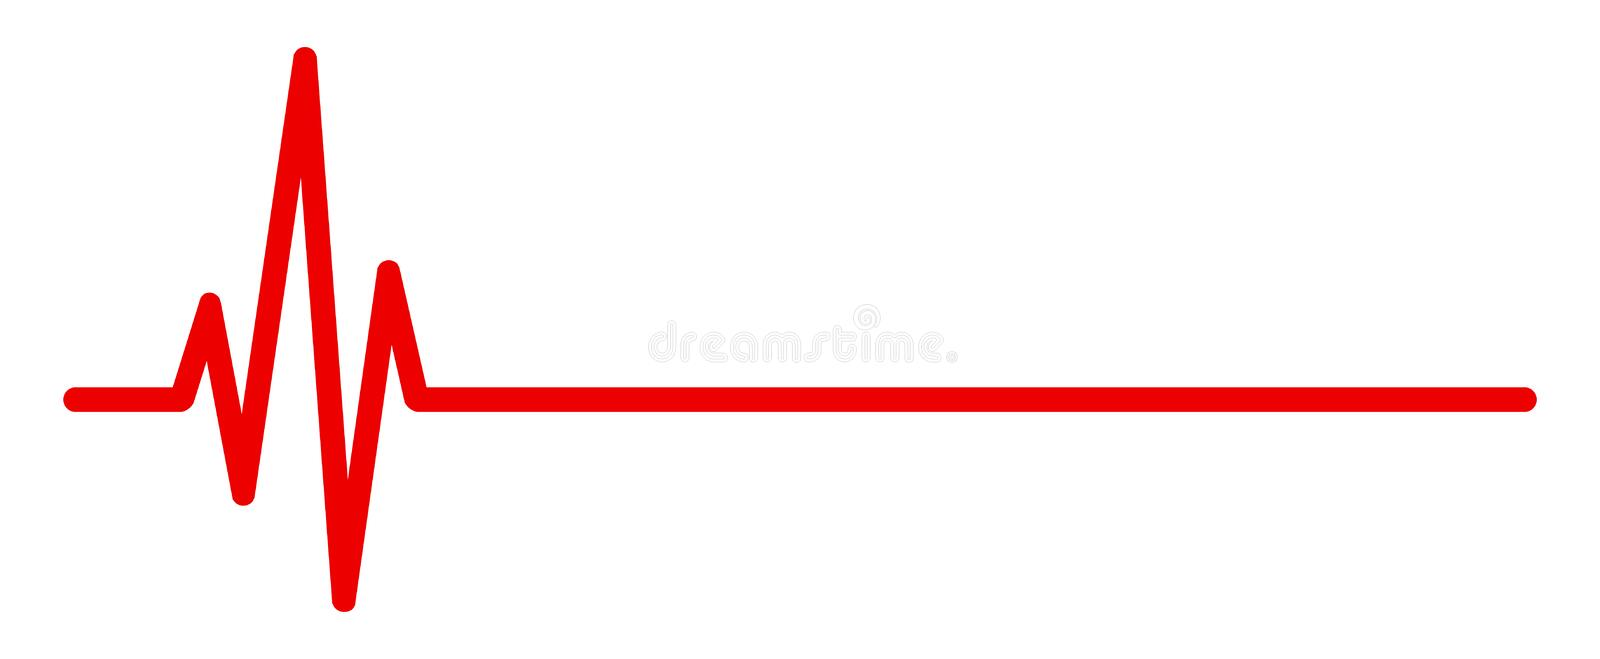 Heart pulse, one line, cardiogram sign, heartbeat - vector. Heart pulse, one line, cardiogram sign, heartbeat – stock vector royalty free illustration